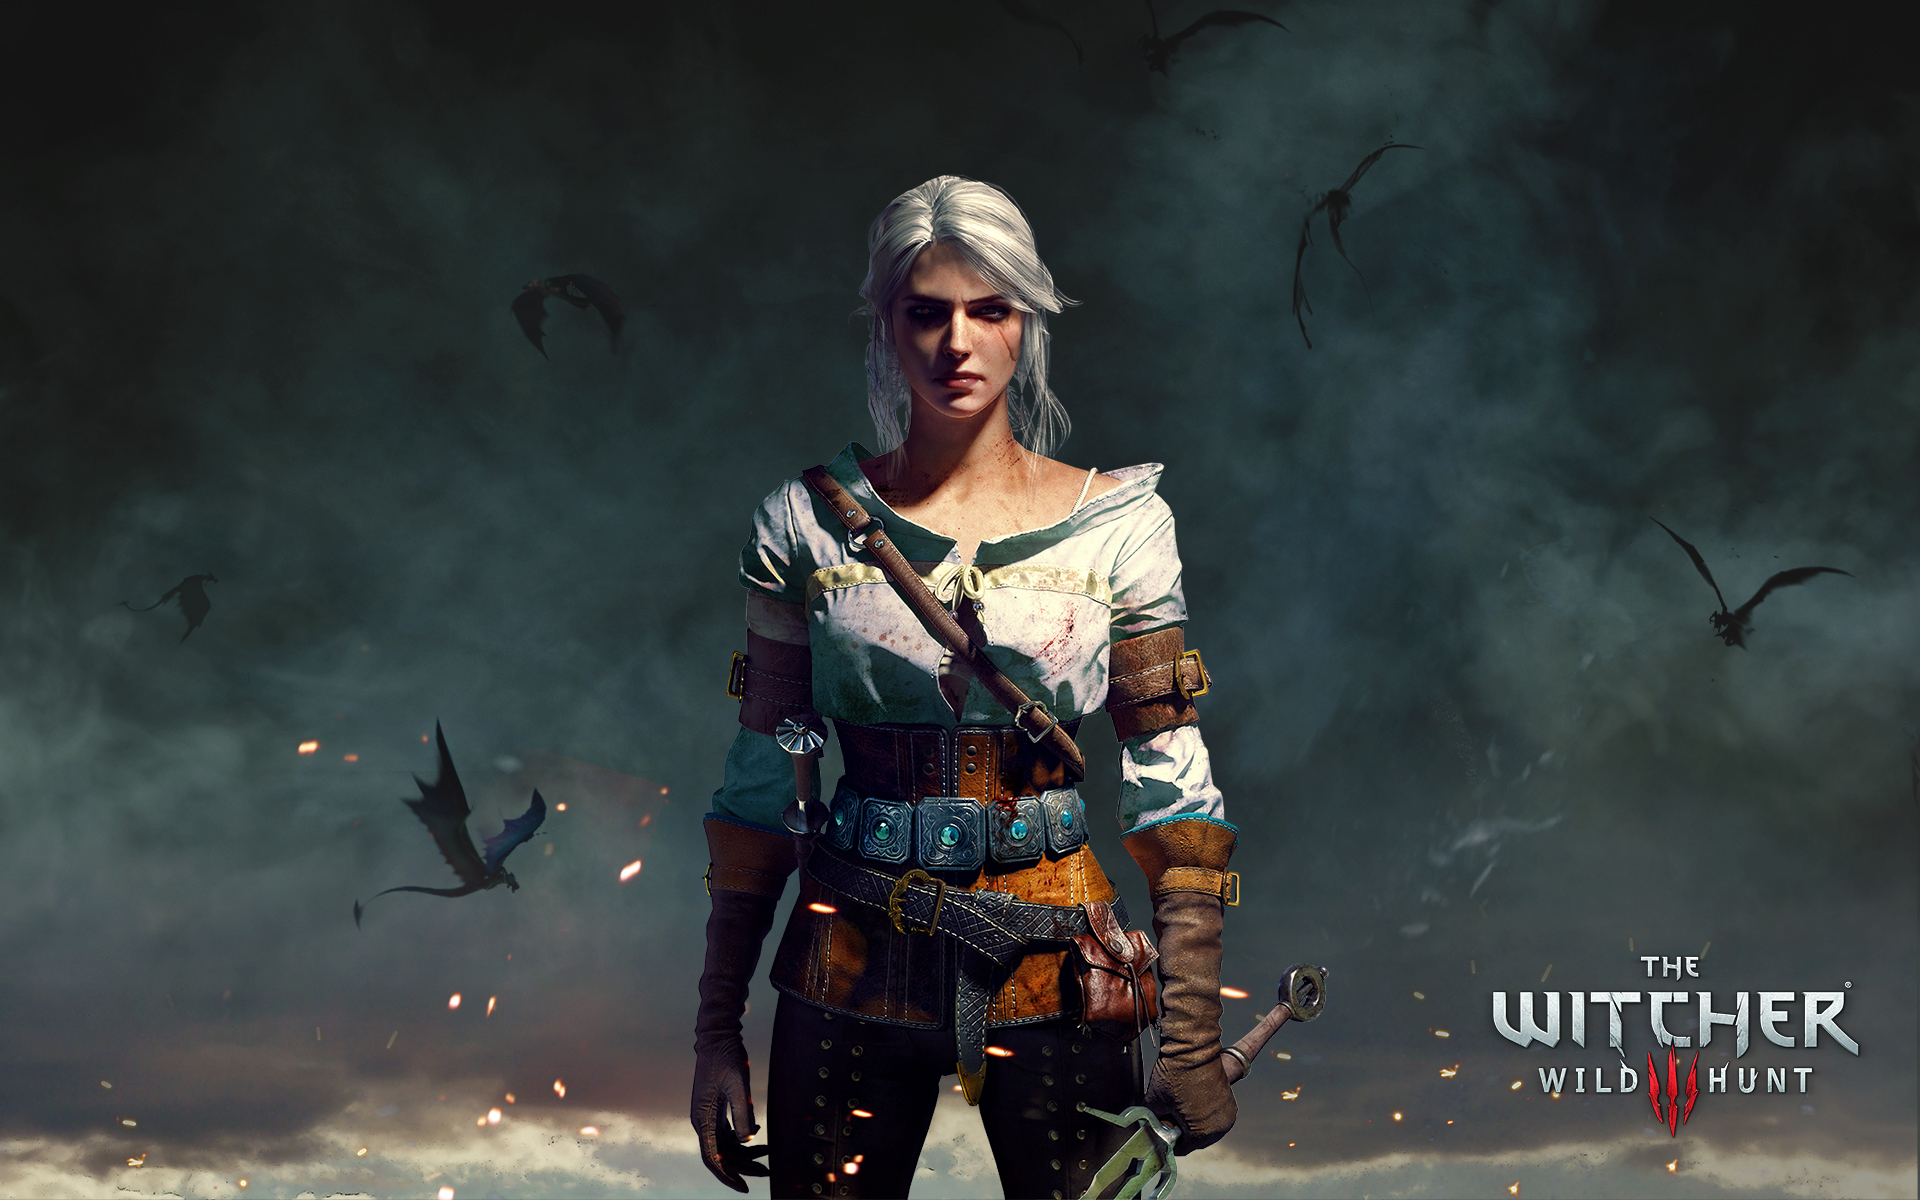 Ciri the witcher 3 wild hunt. обои скачать